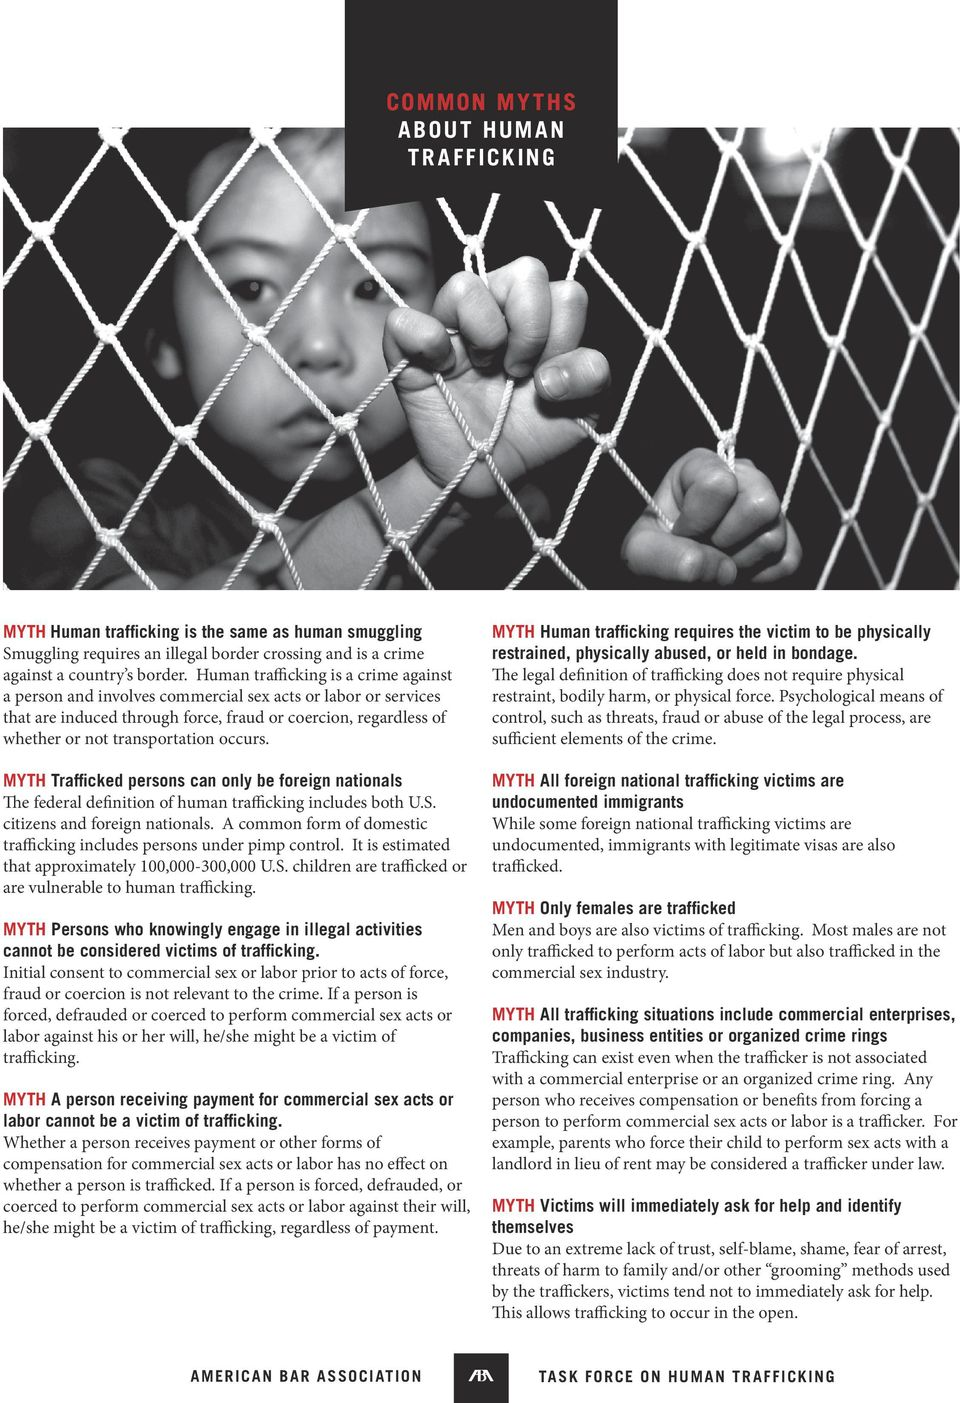 occurs. Myth Trafficked persons can only be foreign nationals The federal definition of human trafficking includes both U.S. citizens and foreign nationals.